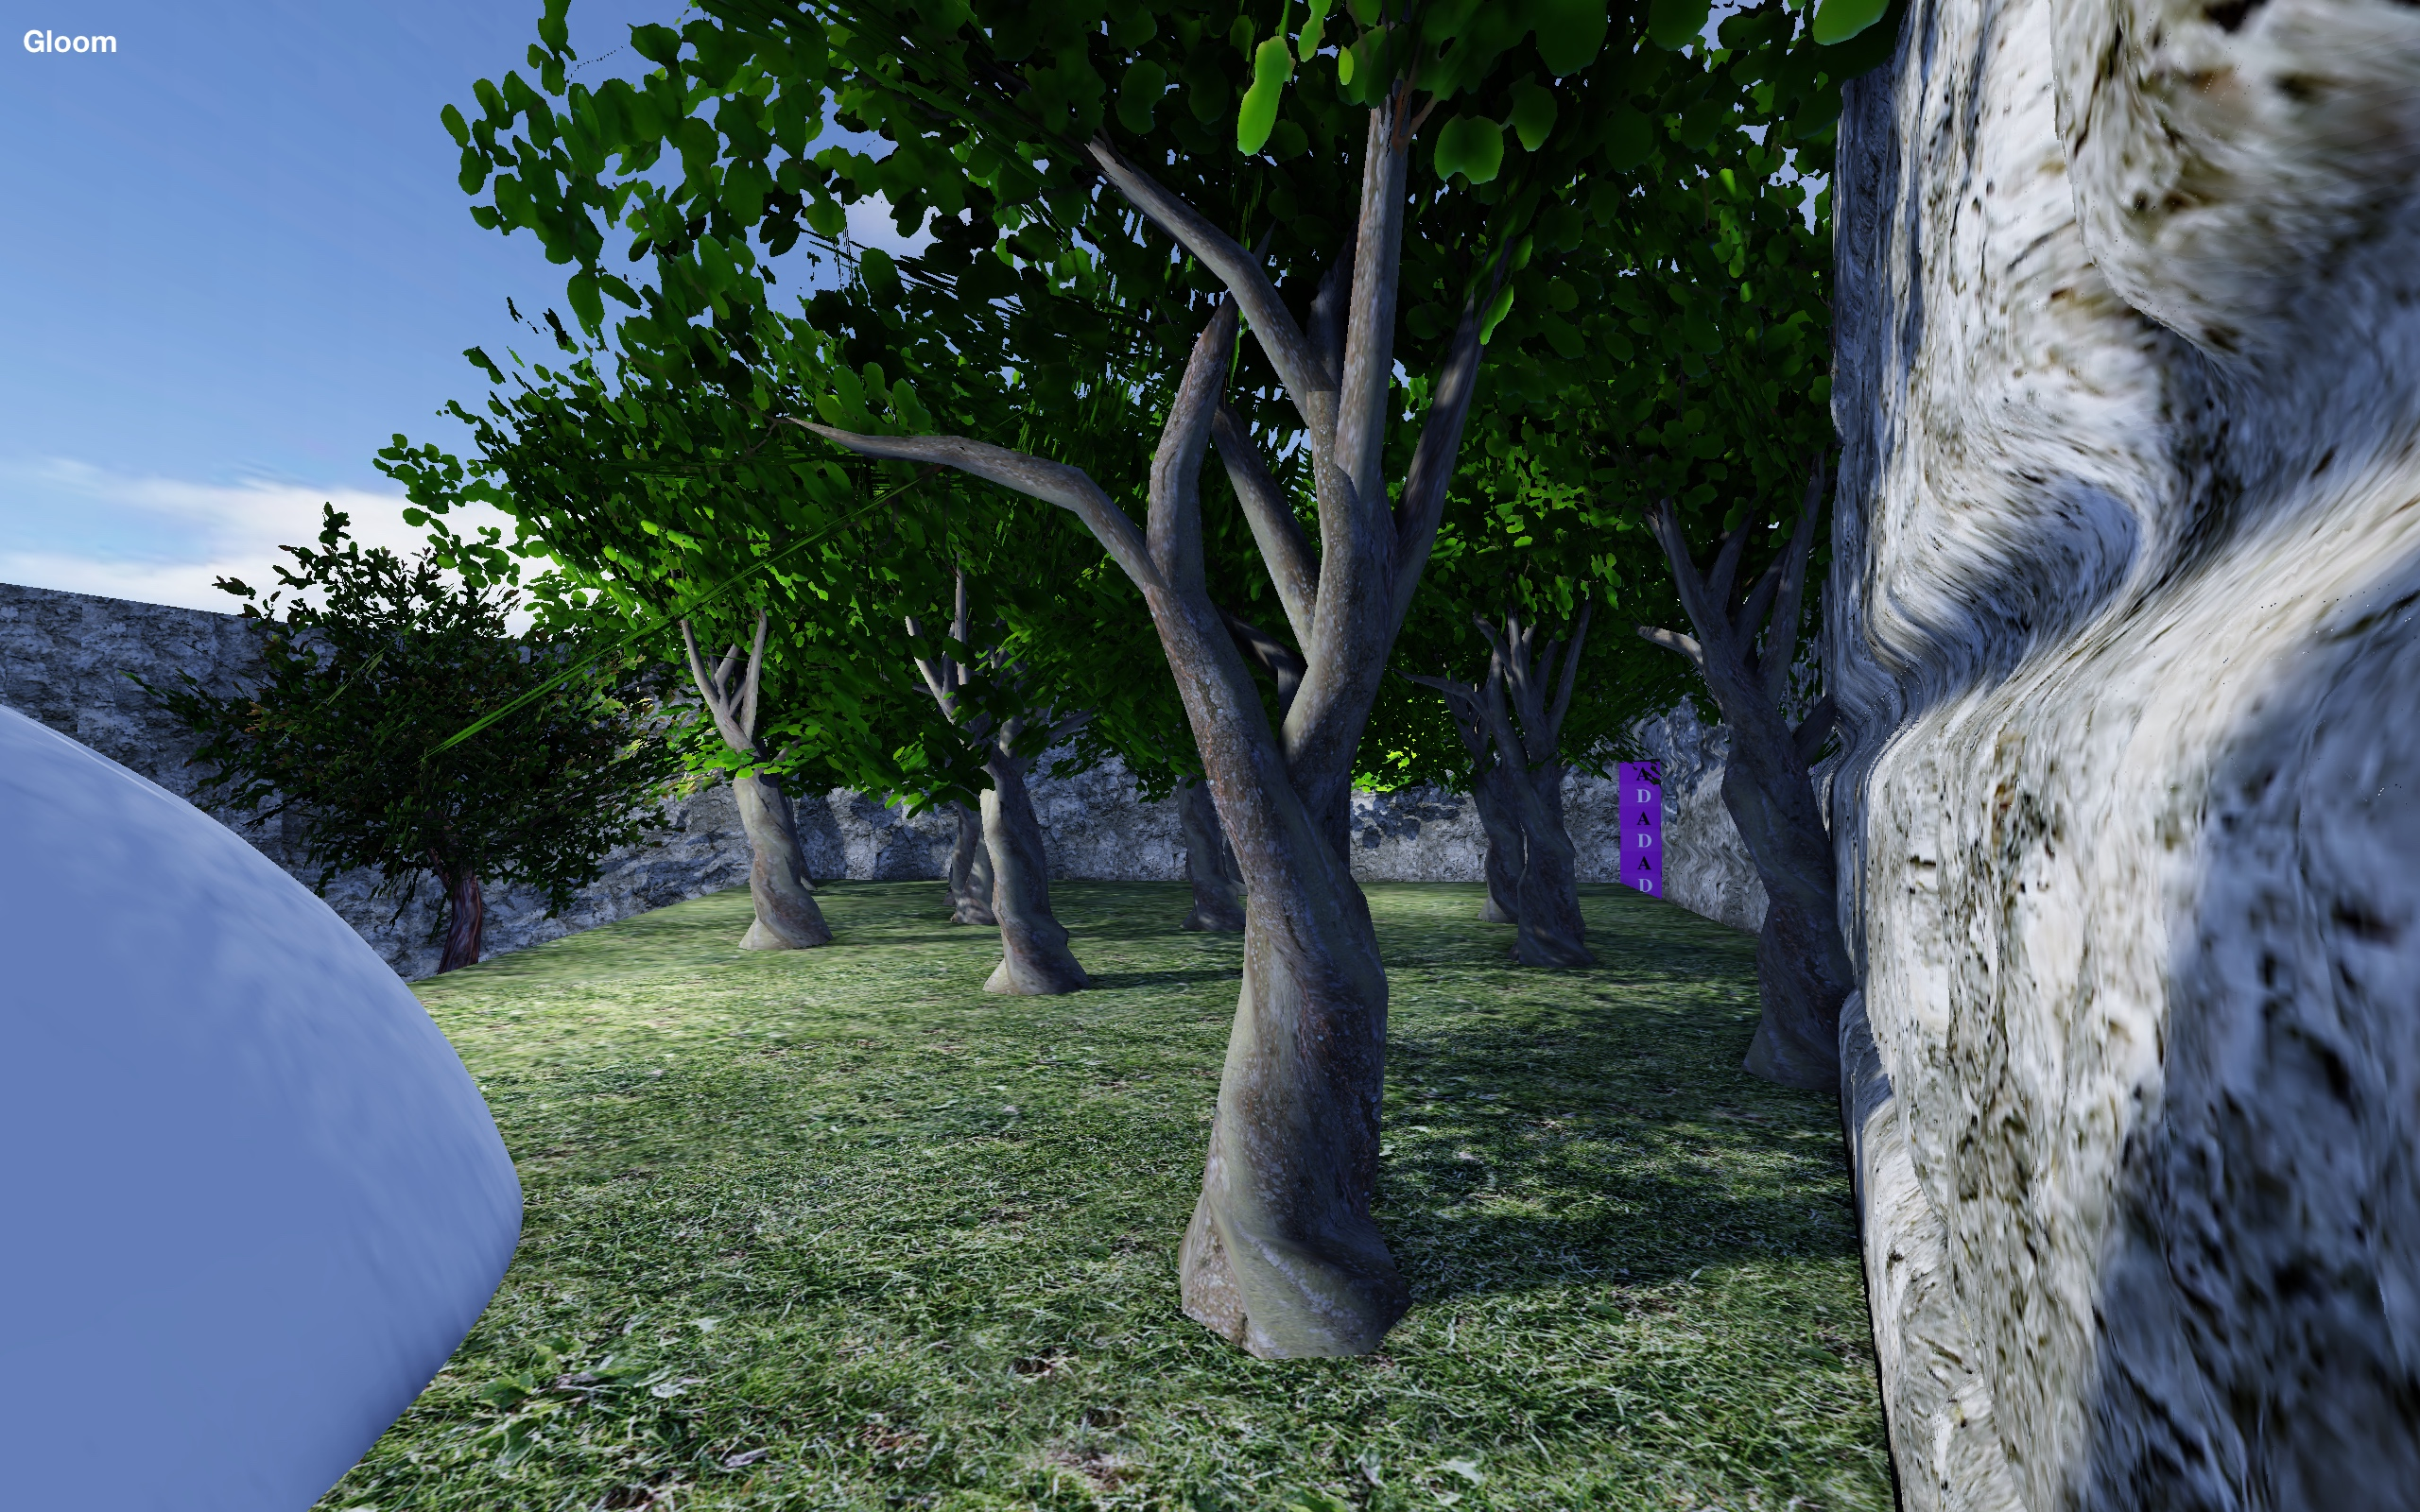 Further rendering explorations – Part 2 – Doomsday Blog